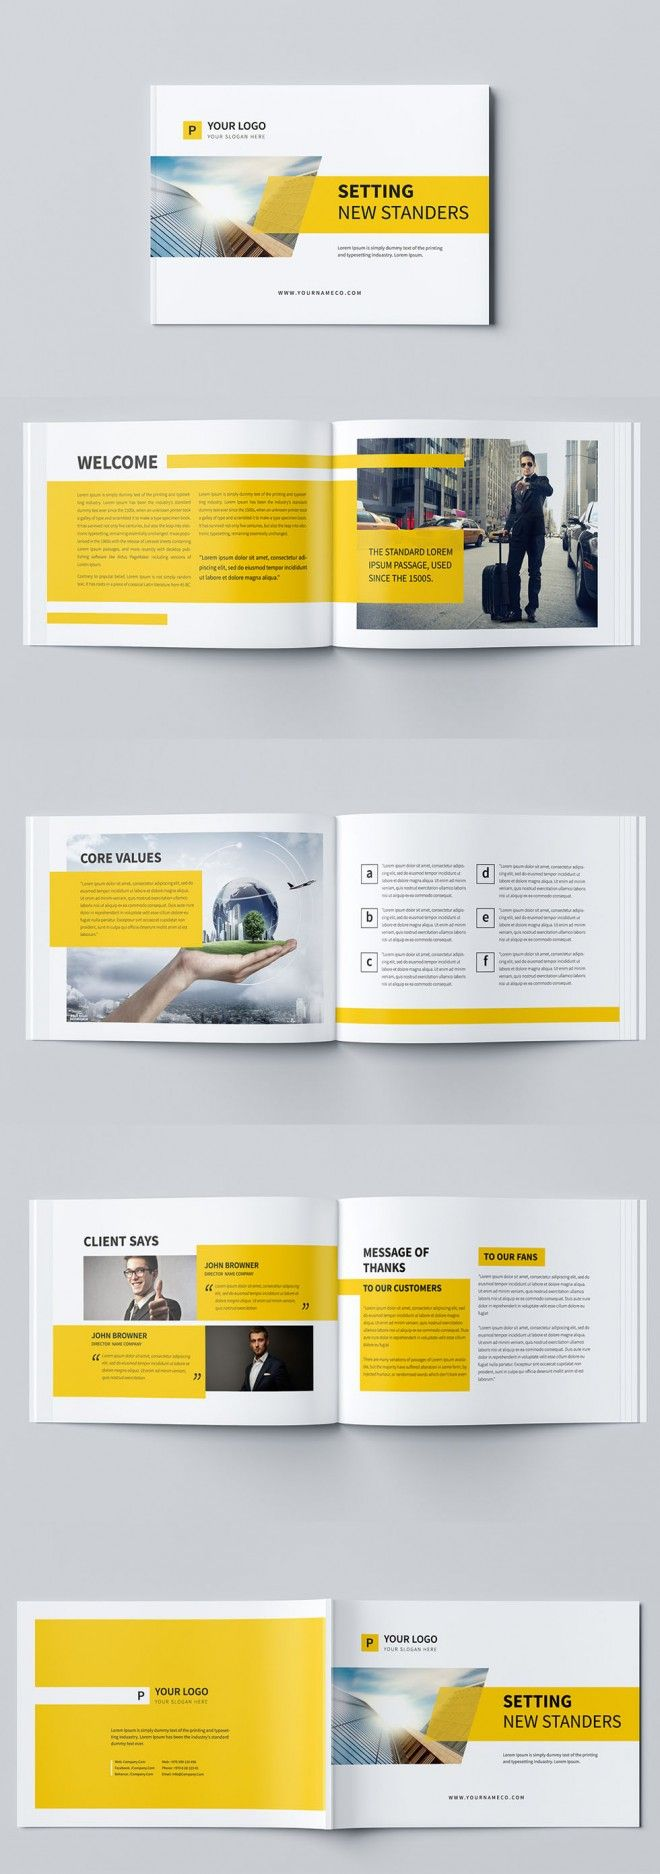 brochure design                                                                                                                                                      More                                                                                                                                                                                 More